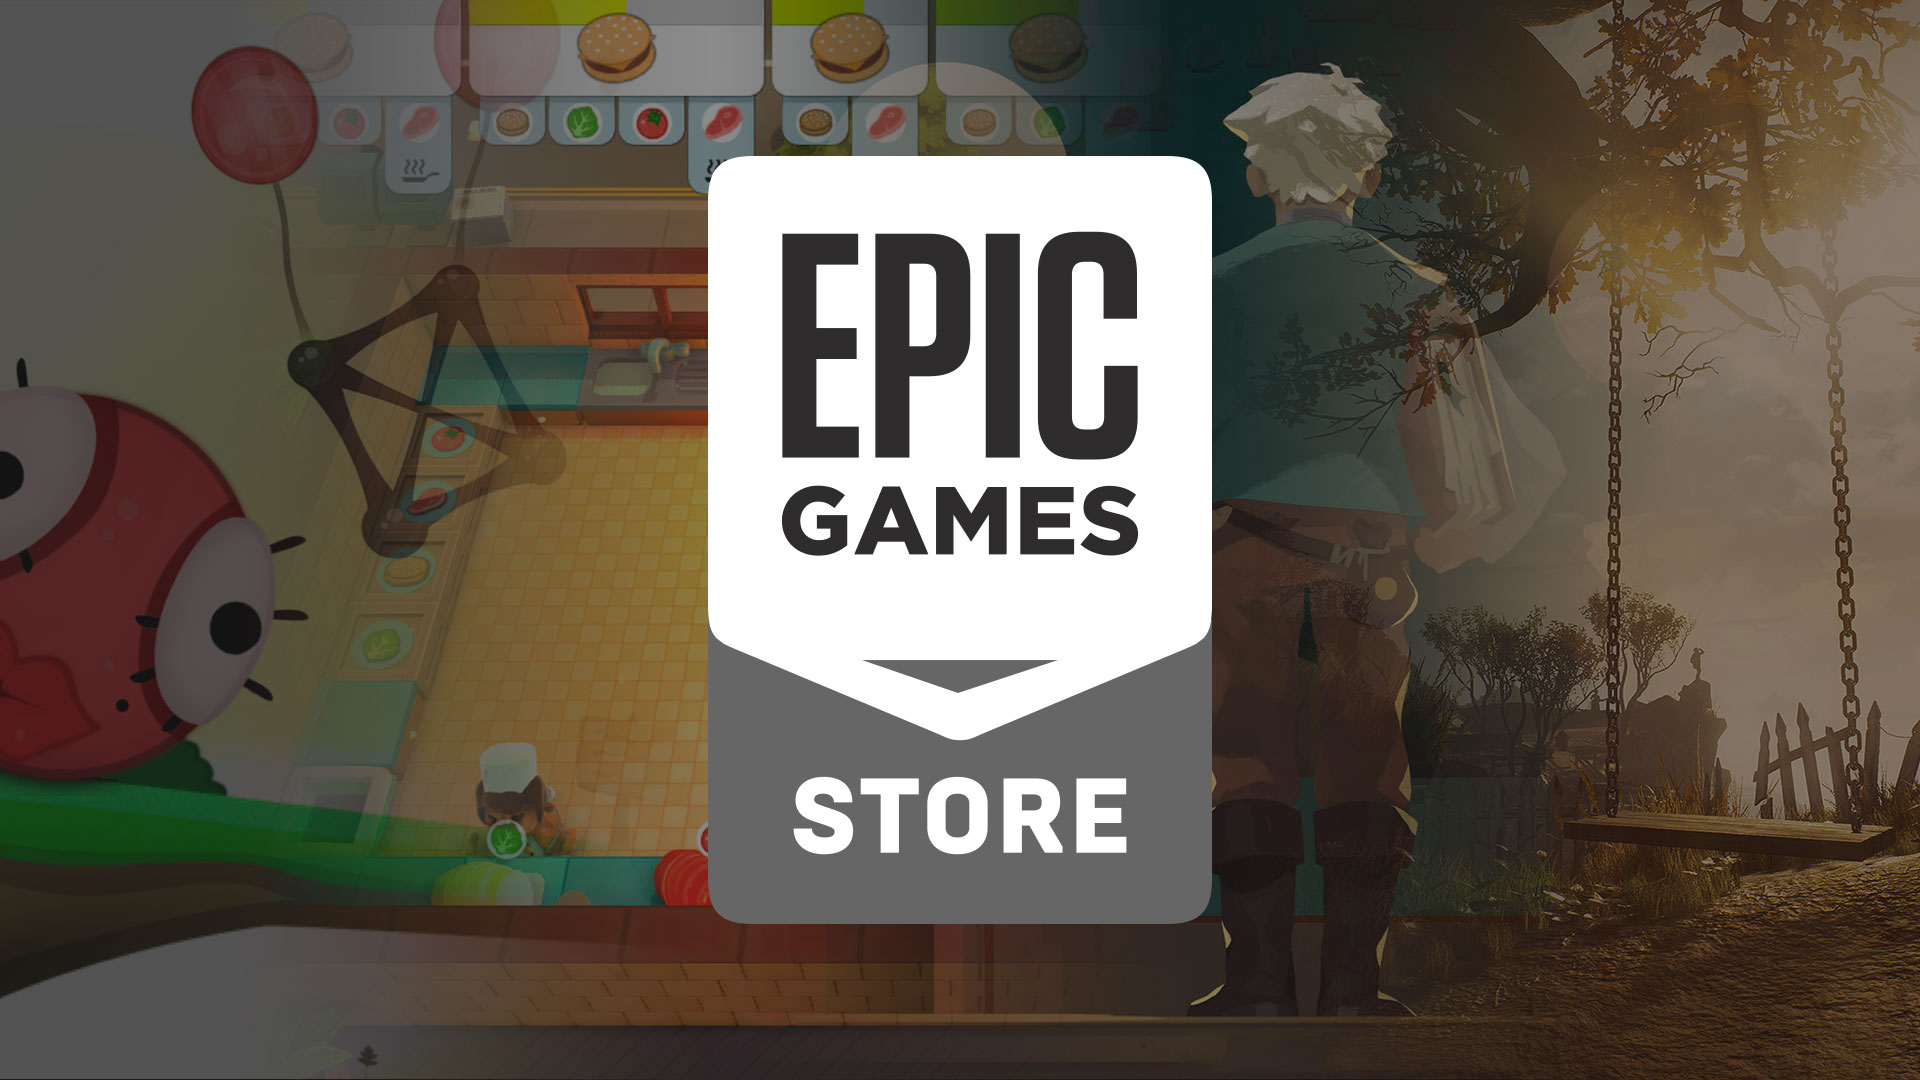 Next week's free game from Epic has a yeti in it